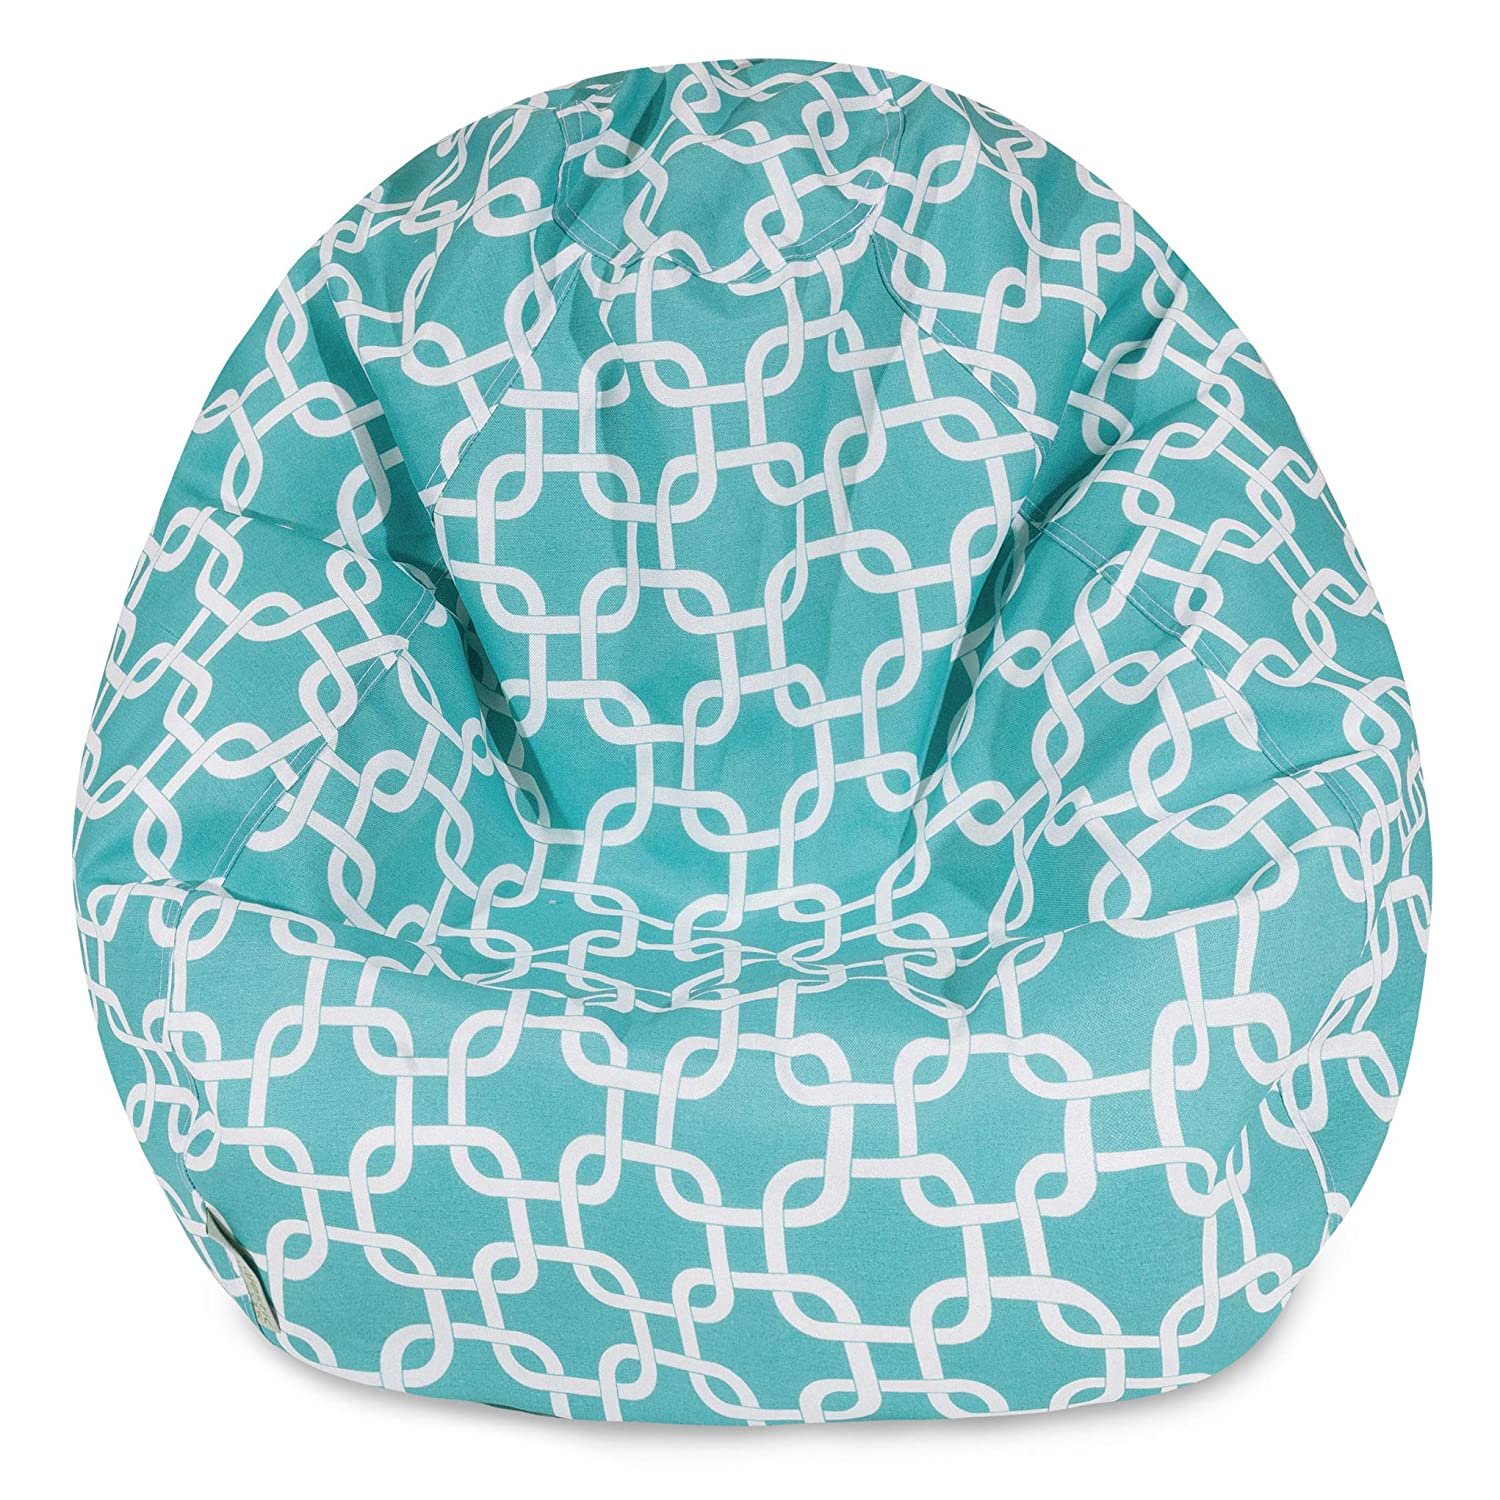 Majestic Home Goods Classic Bean Bag Chair Majestic Home Goods LG 85907248034 Teal Blue 28 x 28 x 22 Inches Links Giant Classic Bean Bags for Small Adults and Kids